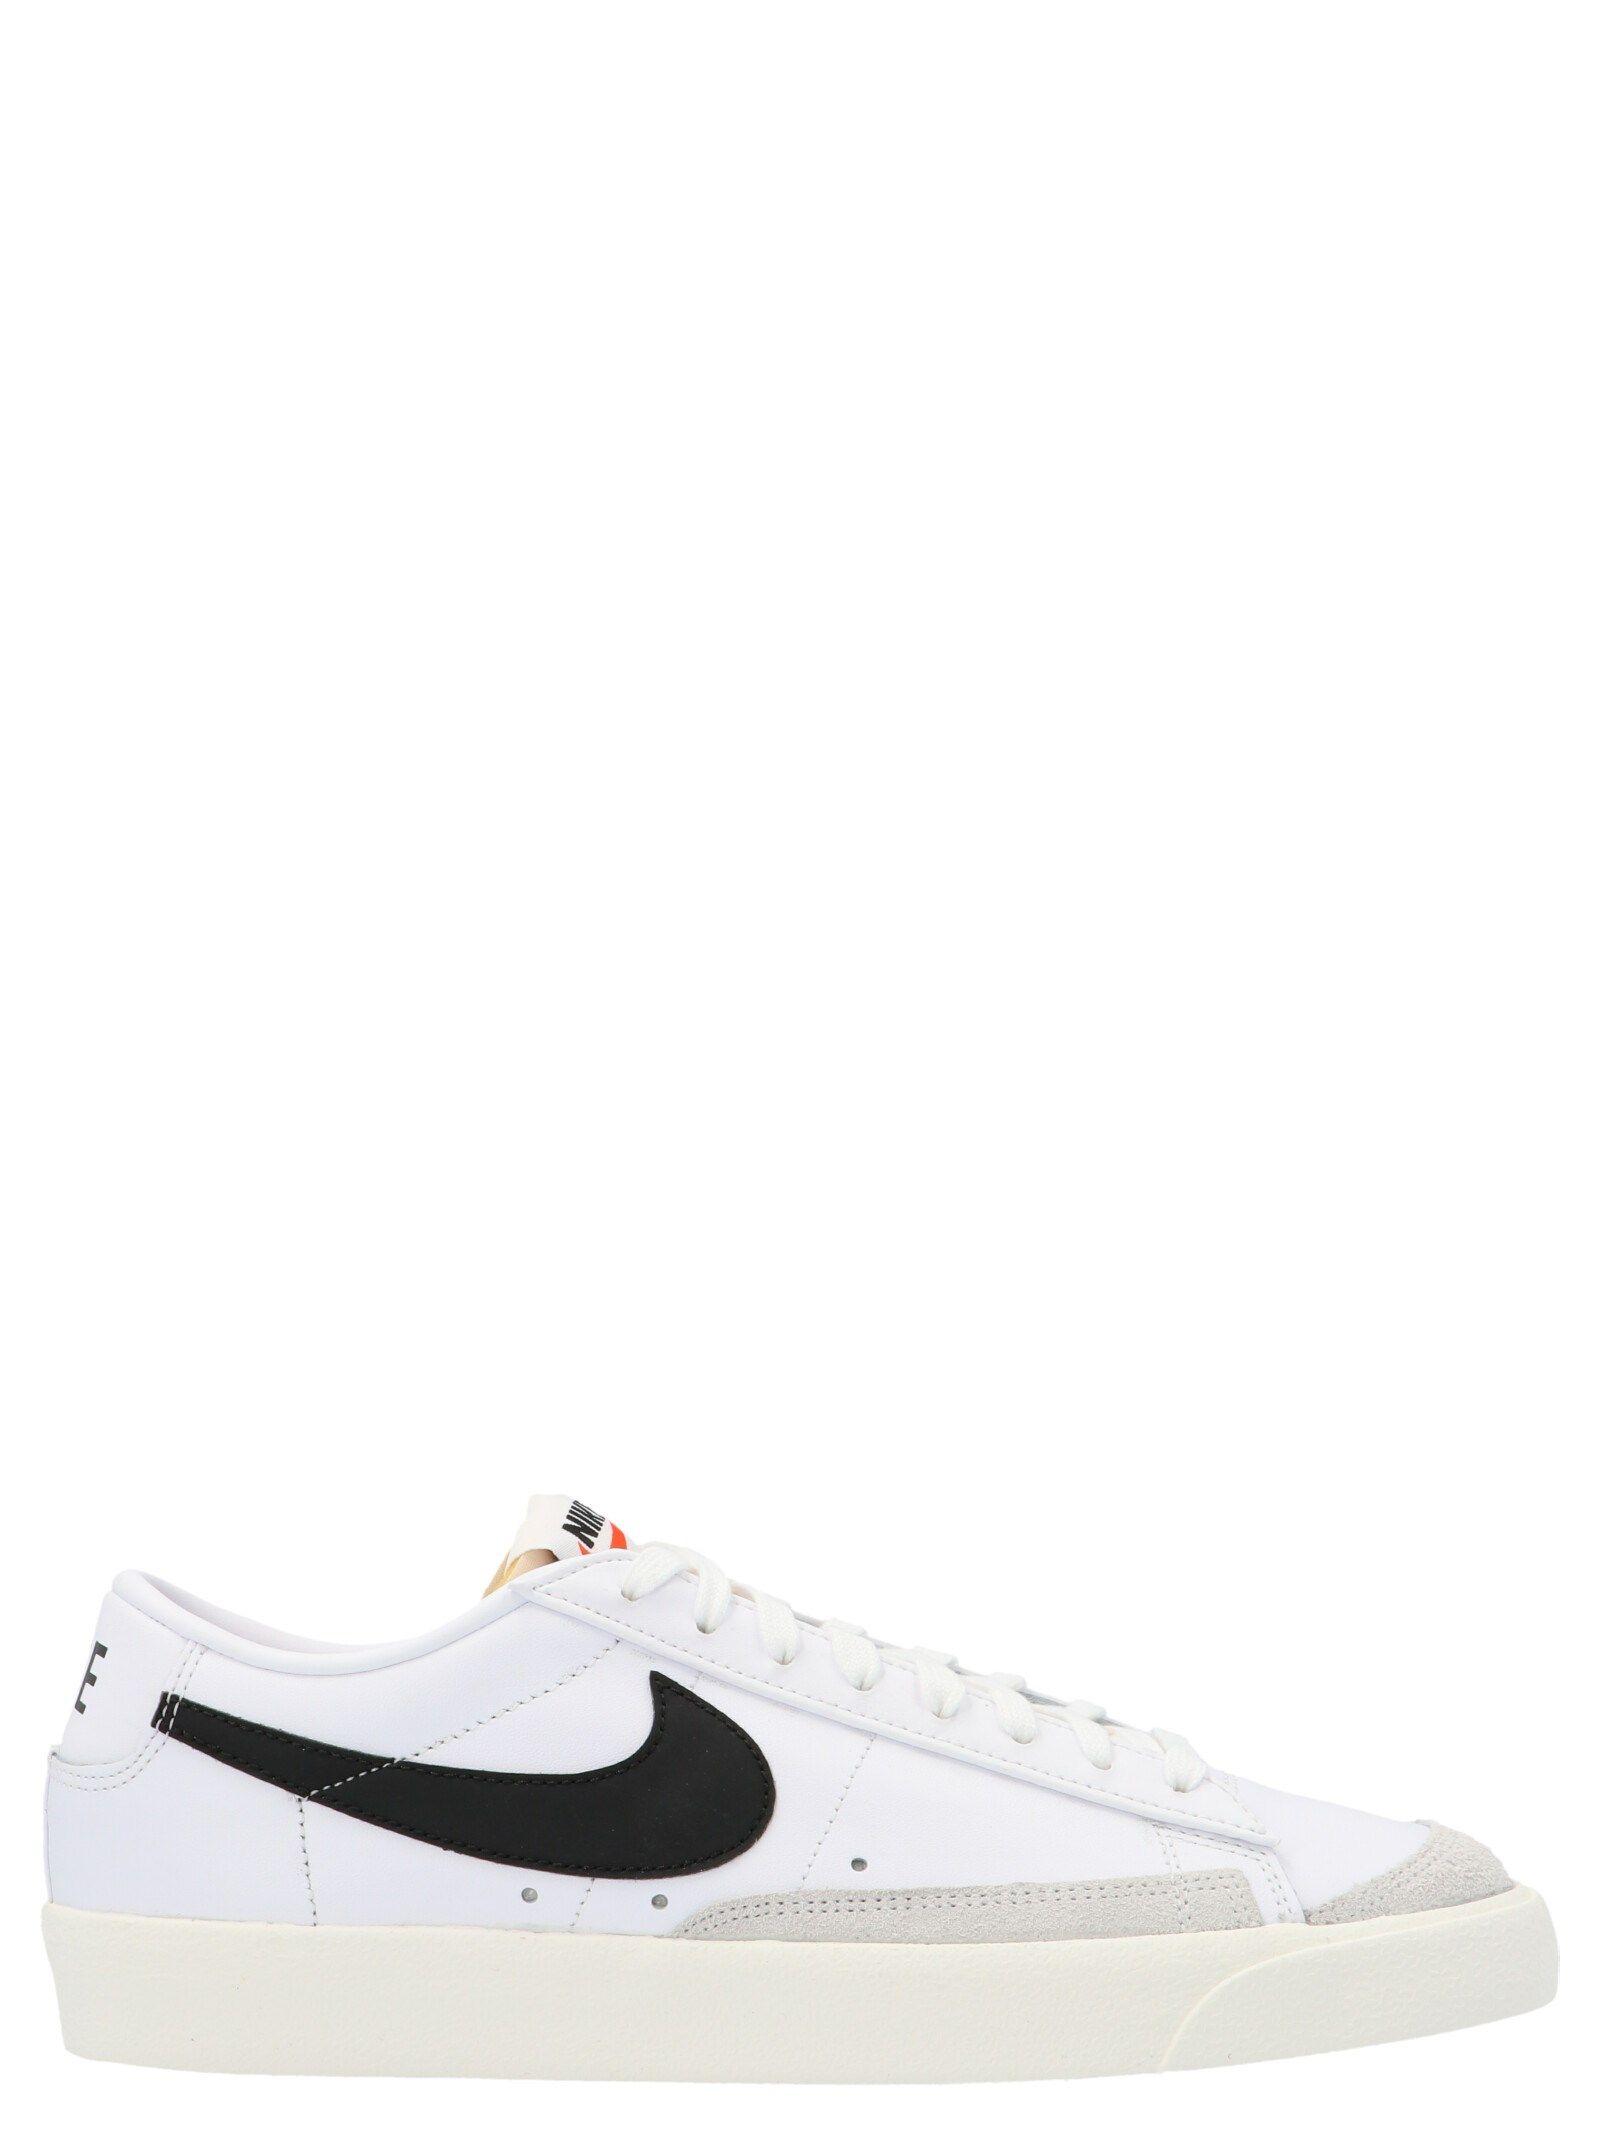 Nike Sneakers NIKE MEN'S DA6364101 WHITE OTHER MATERIALS SNEAKERS